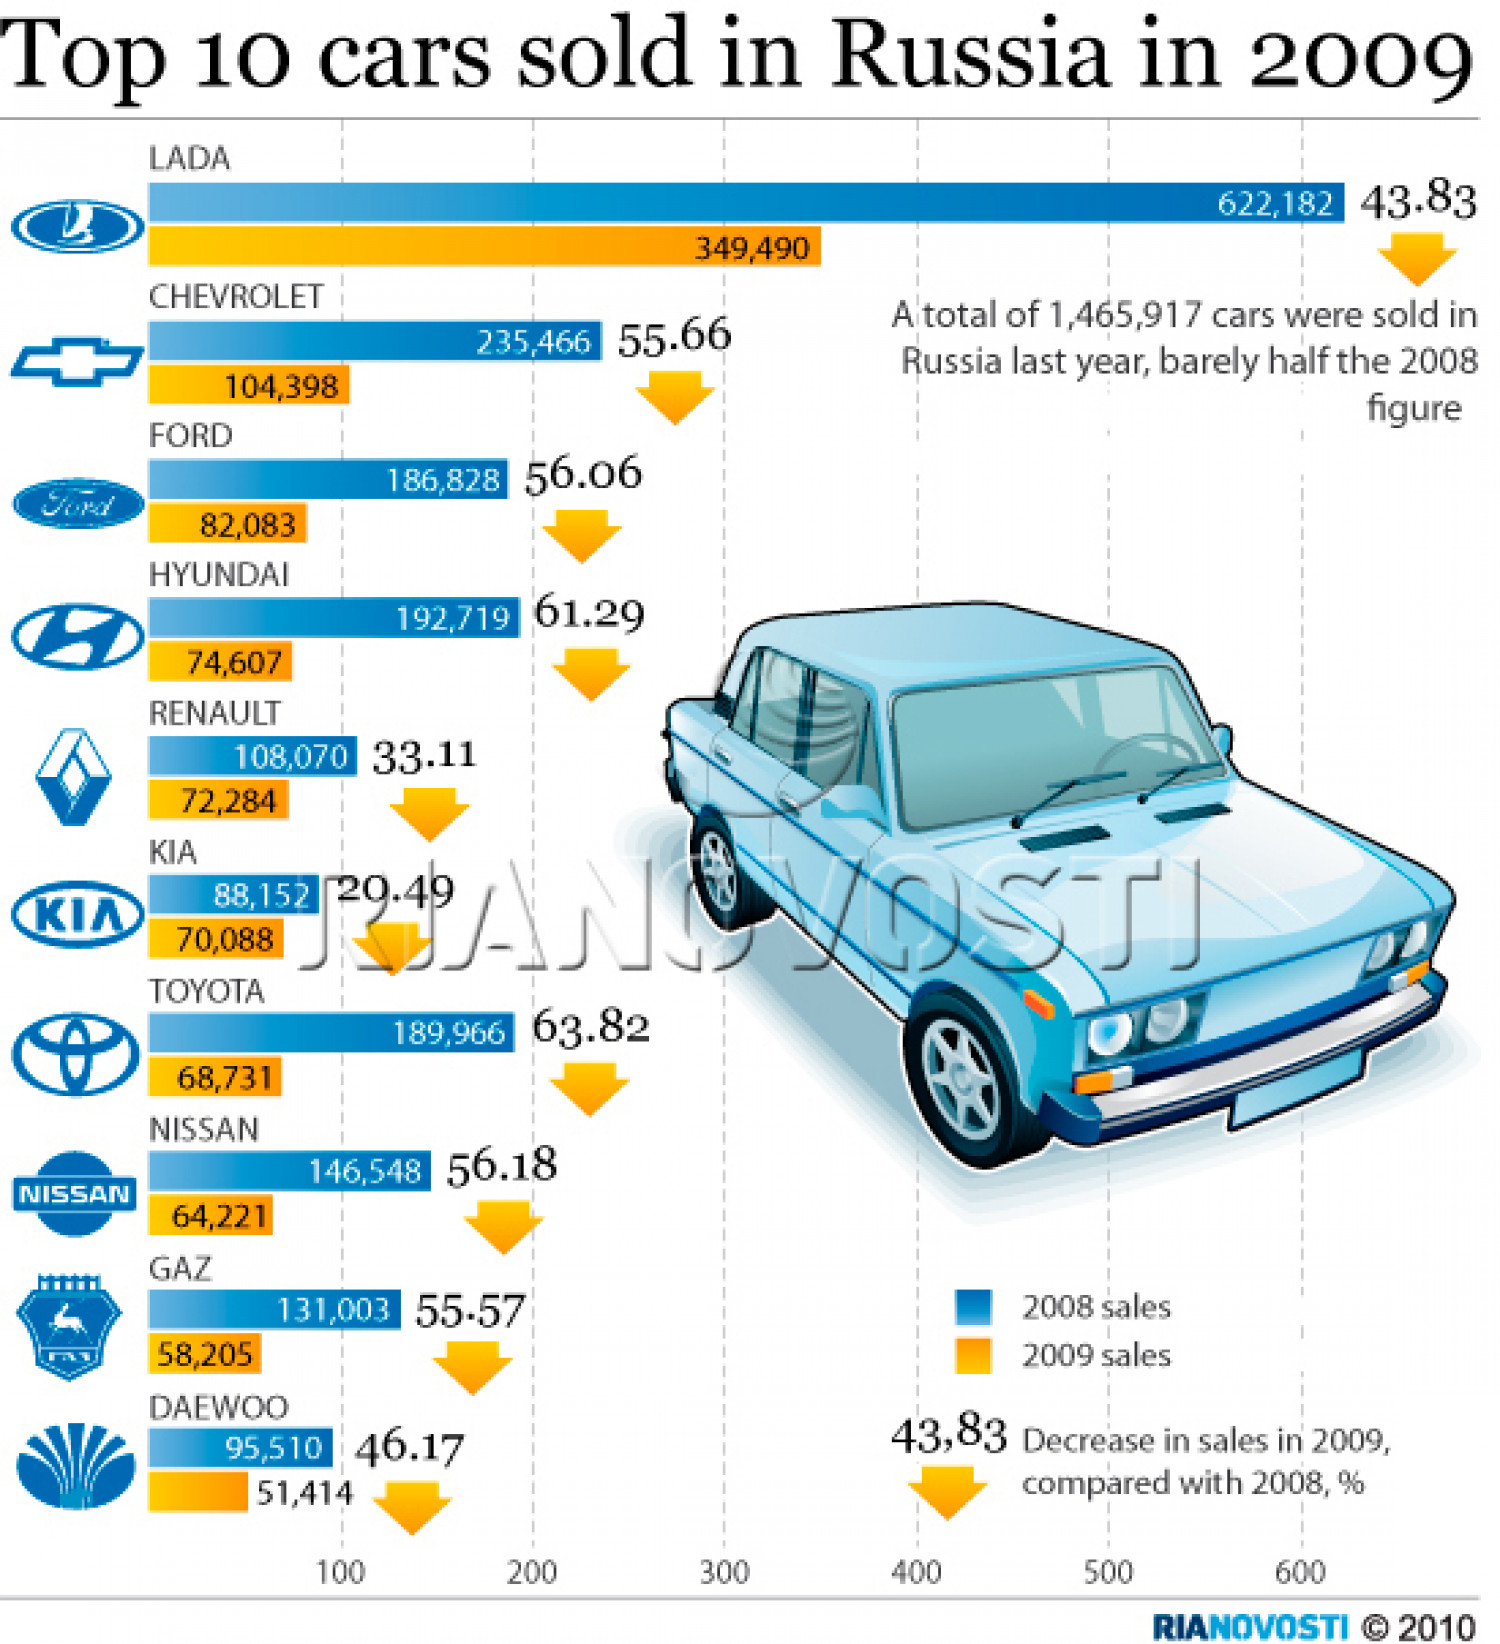 Top 10 cars sold in Russia in 2009  Infographic